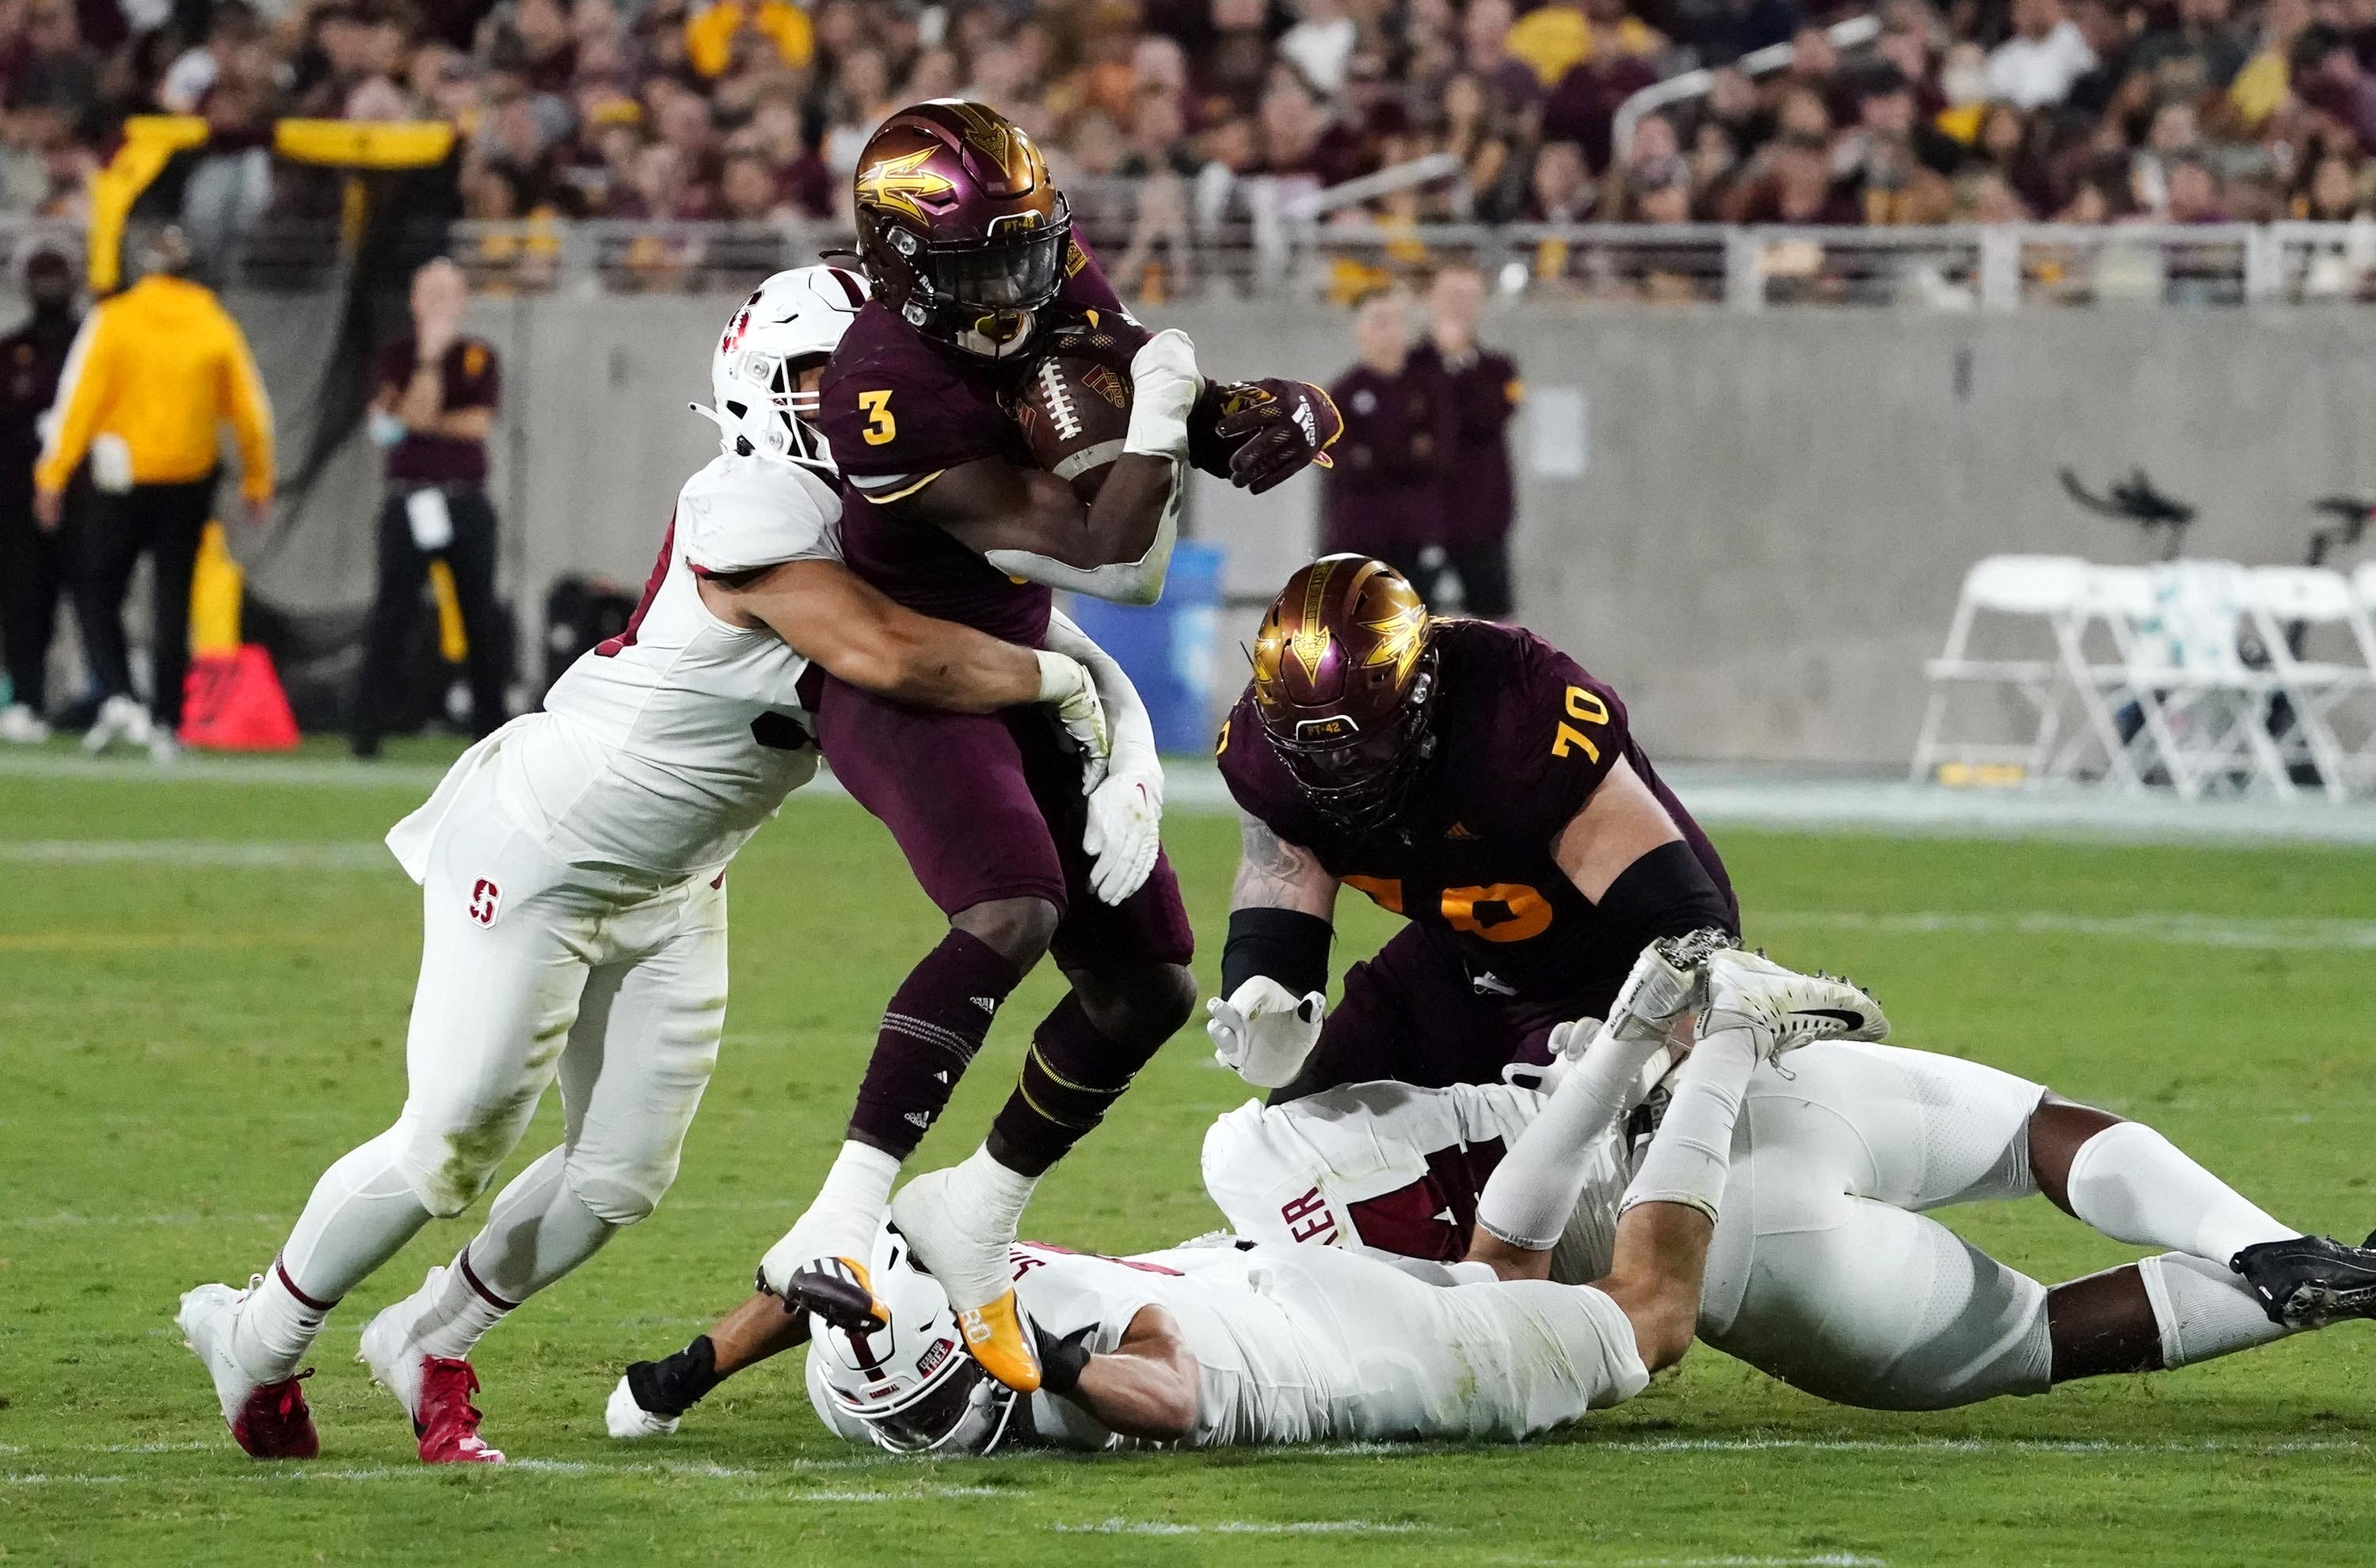 Arizona State focused on solving second-half offensive struggles